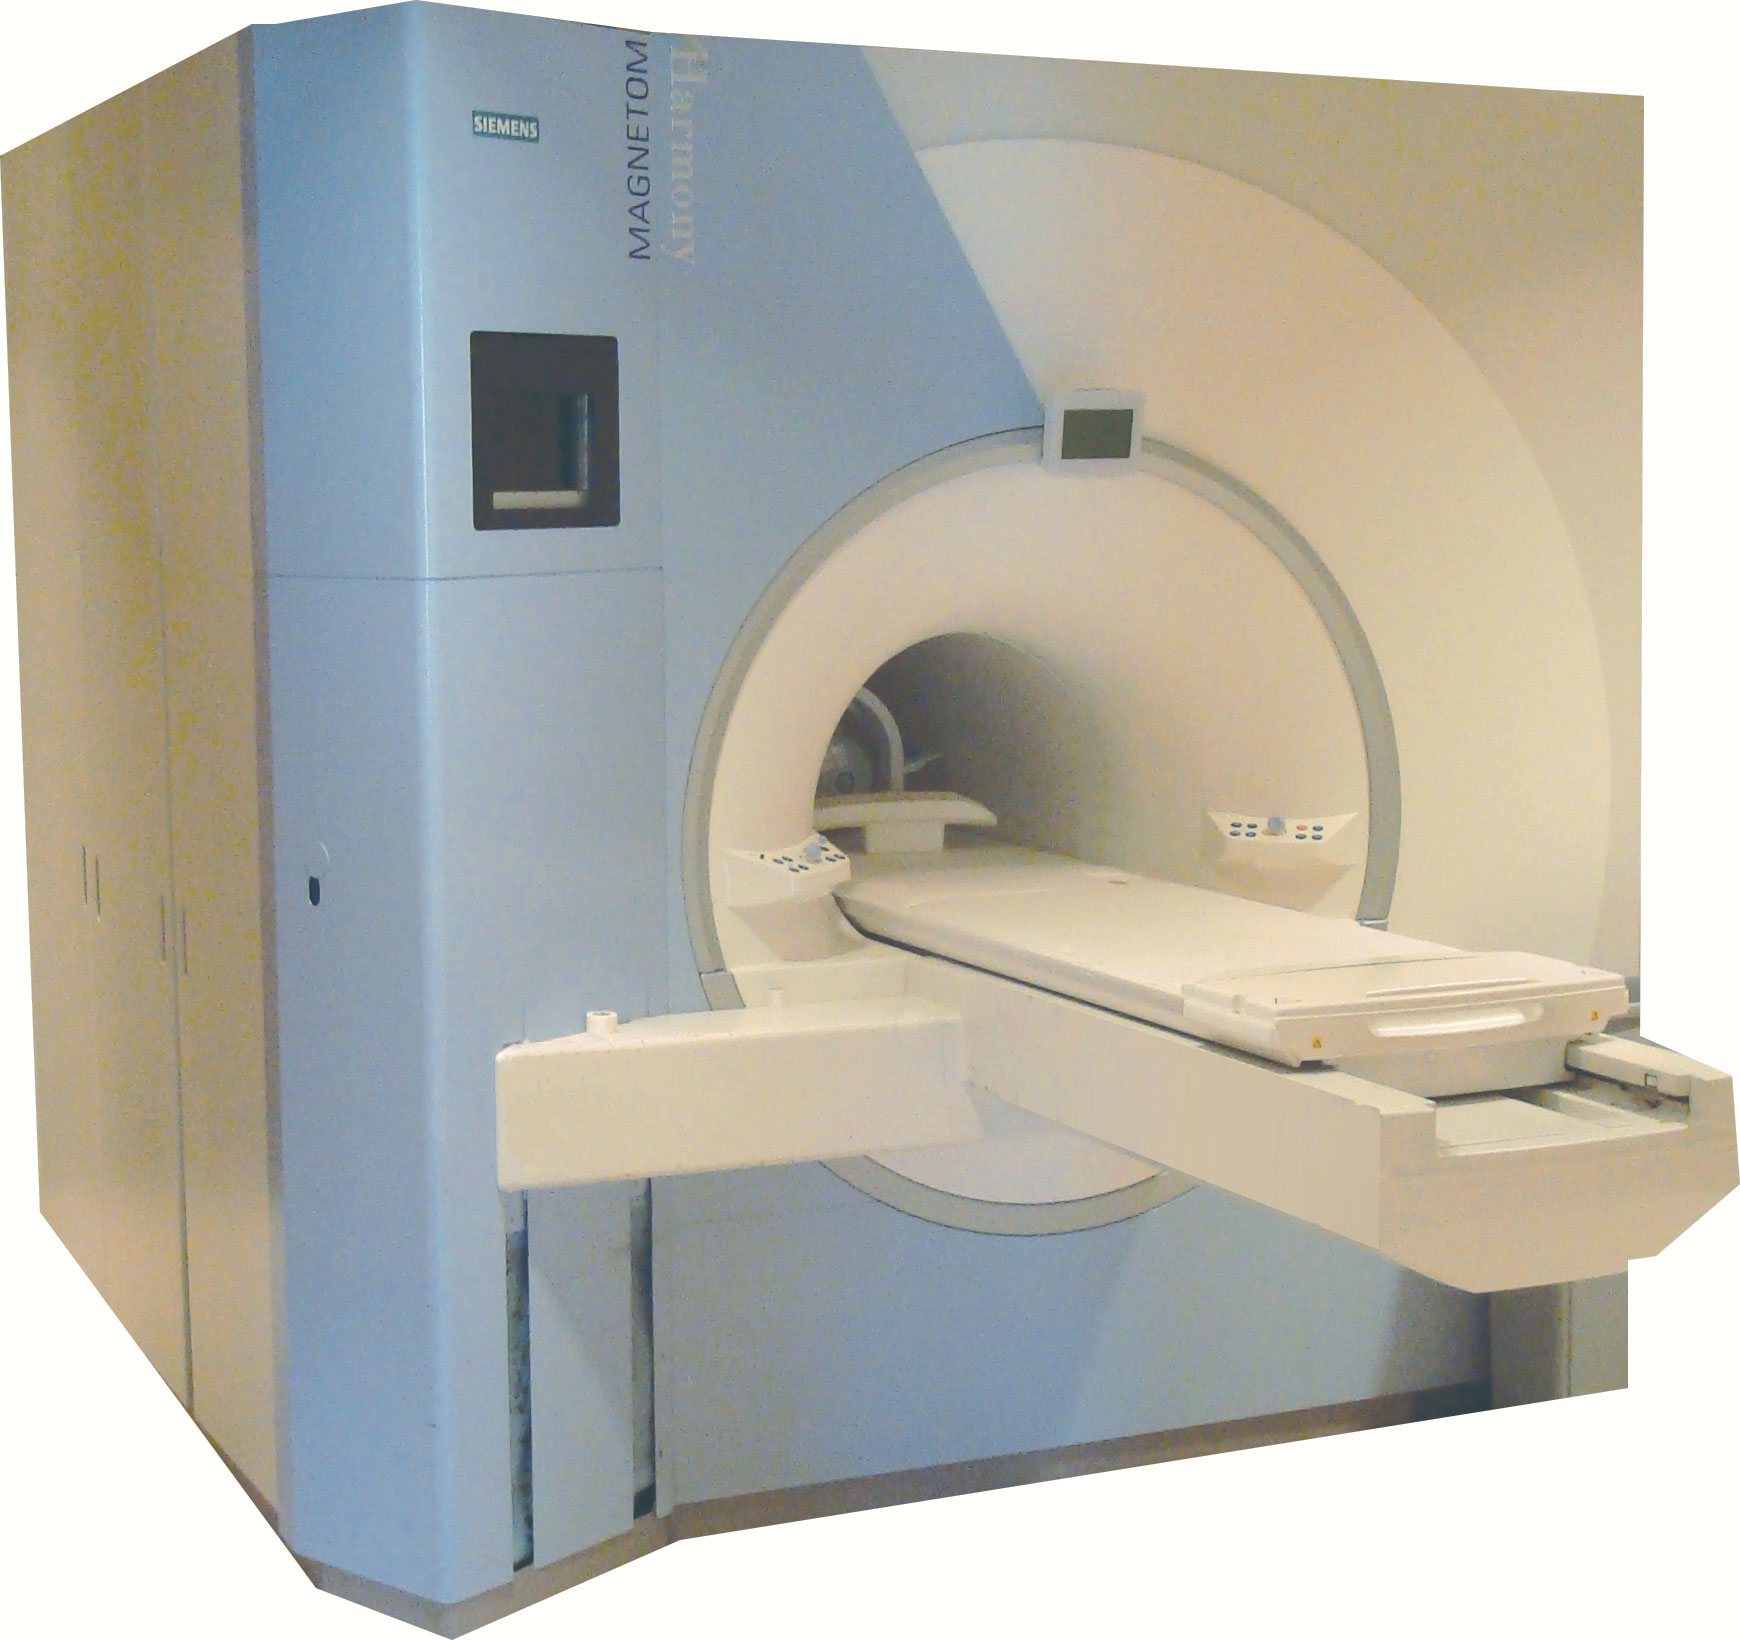 What does an open mri machine look like